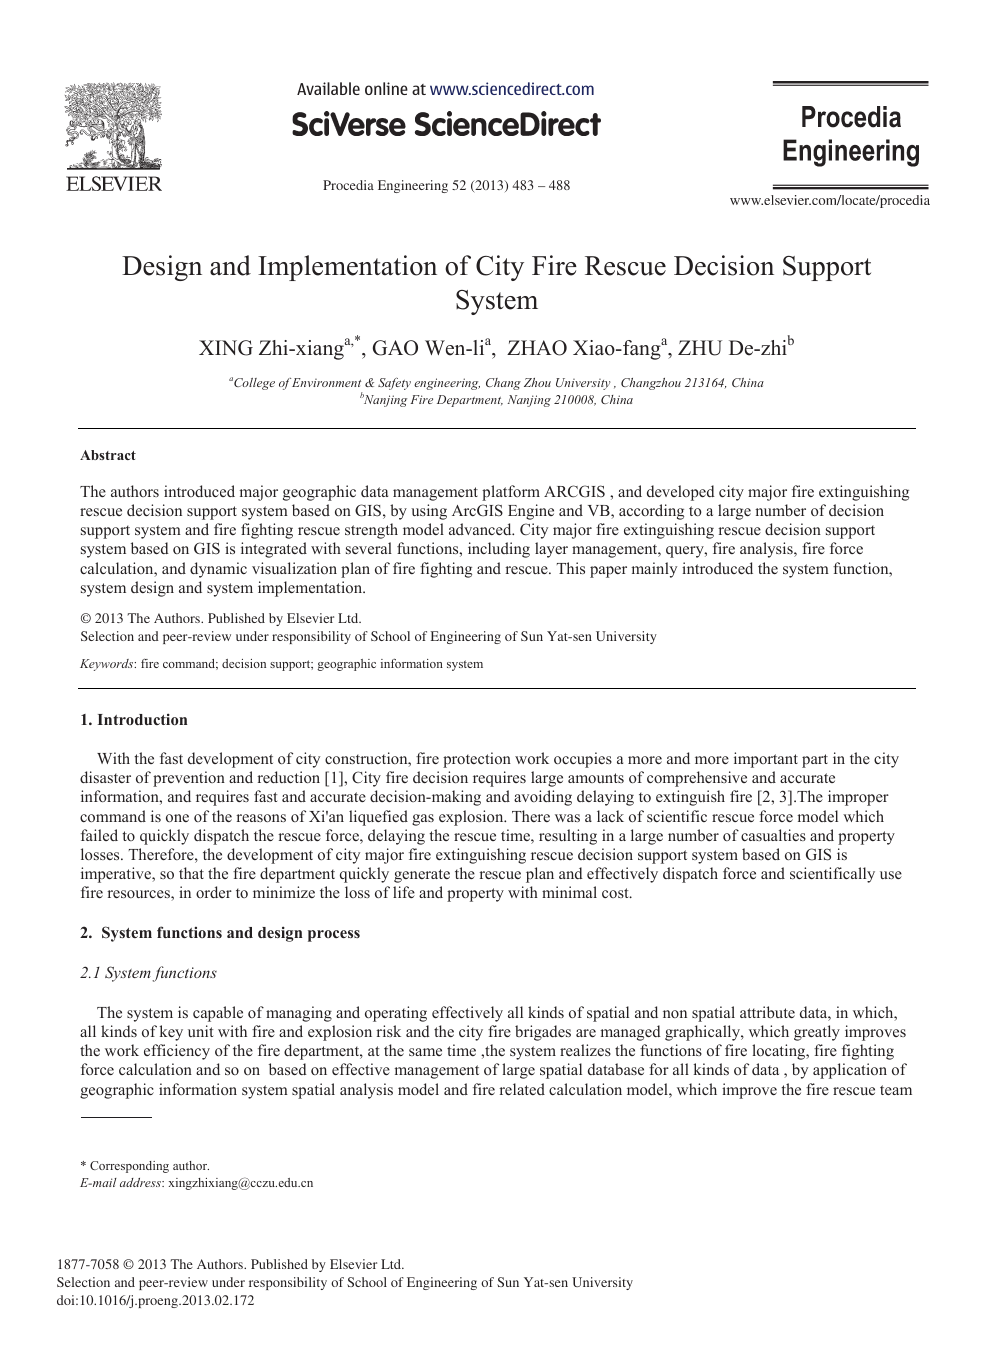 Design and Implementation of City Fire Rescue Decision